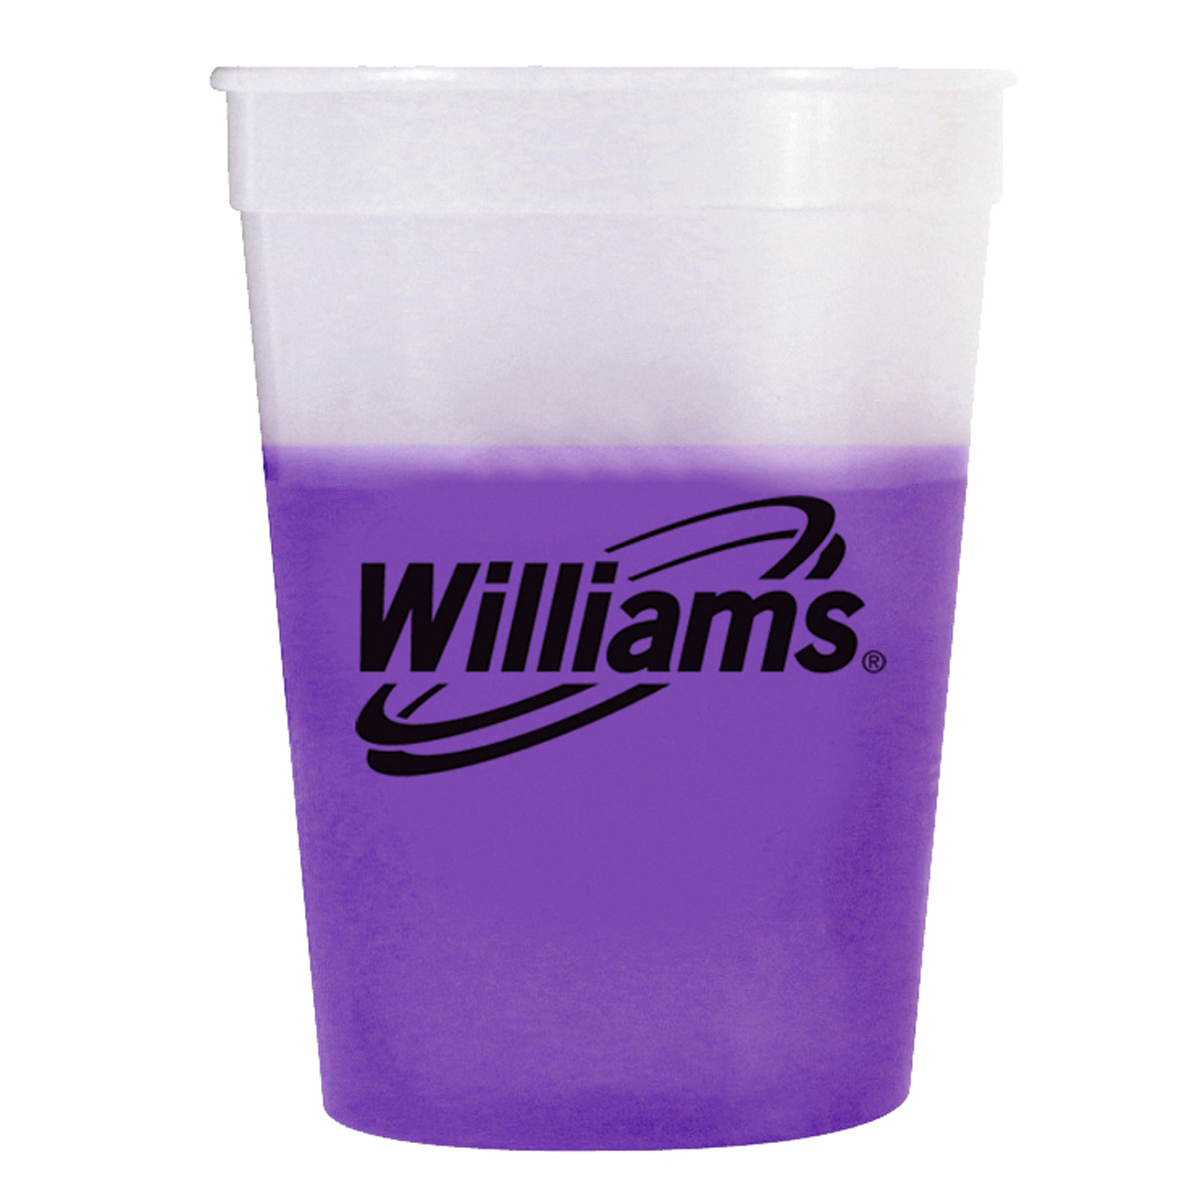 Purple Mood 12 oz. plastic mood stadium cup | mines press